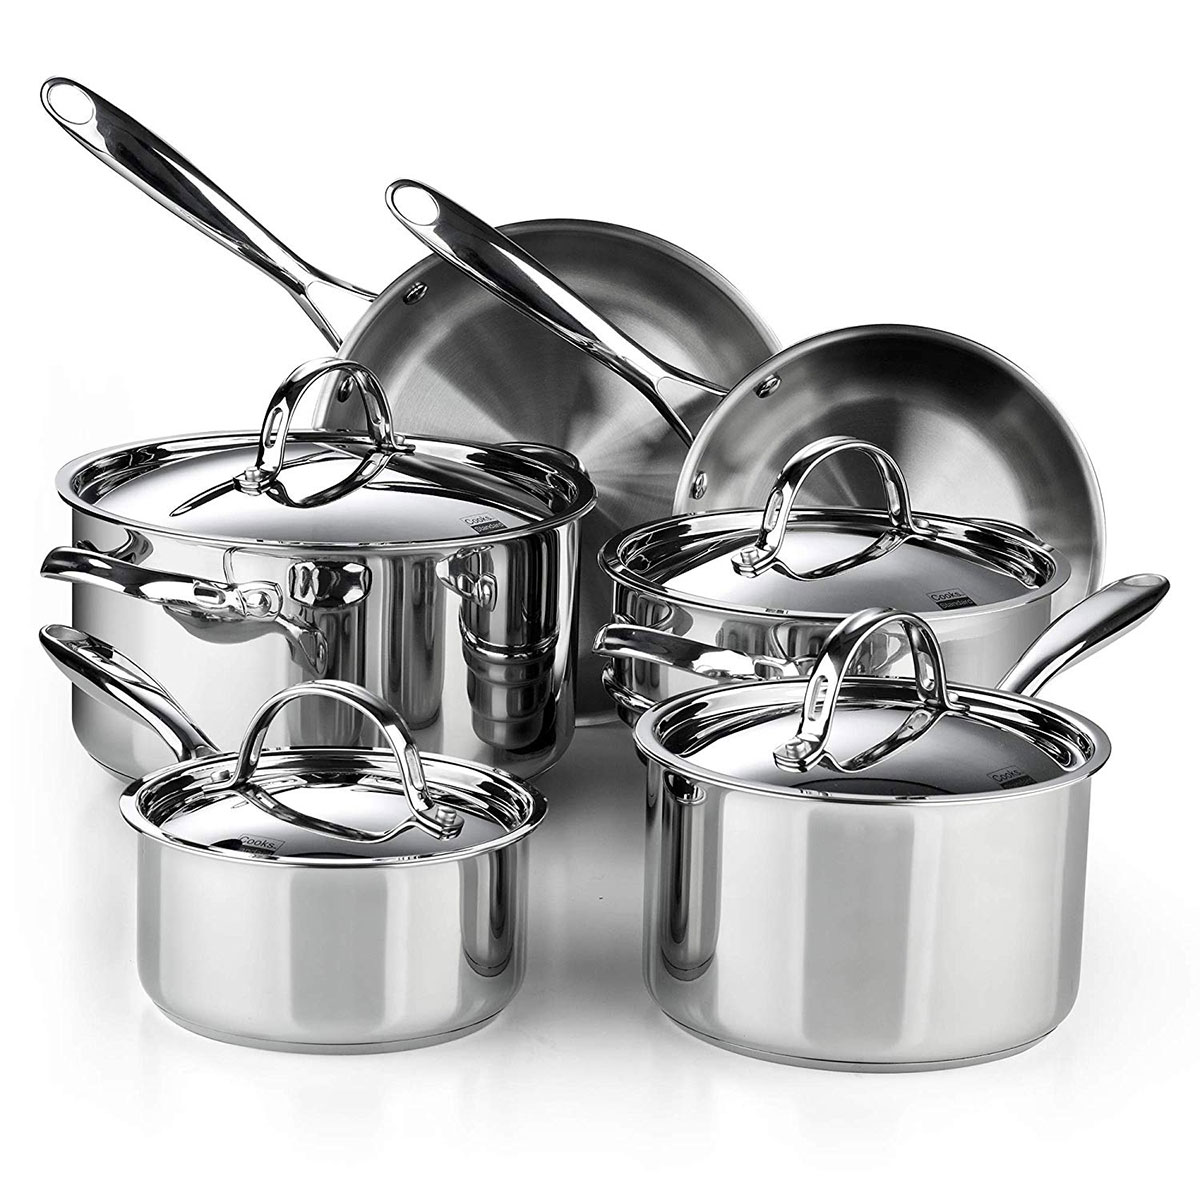 Gifts for Brother: Cooks Standard Classic 10-Piece Stainless Steel Cookware Set